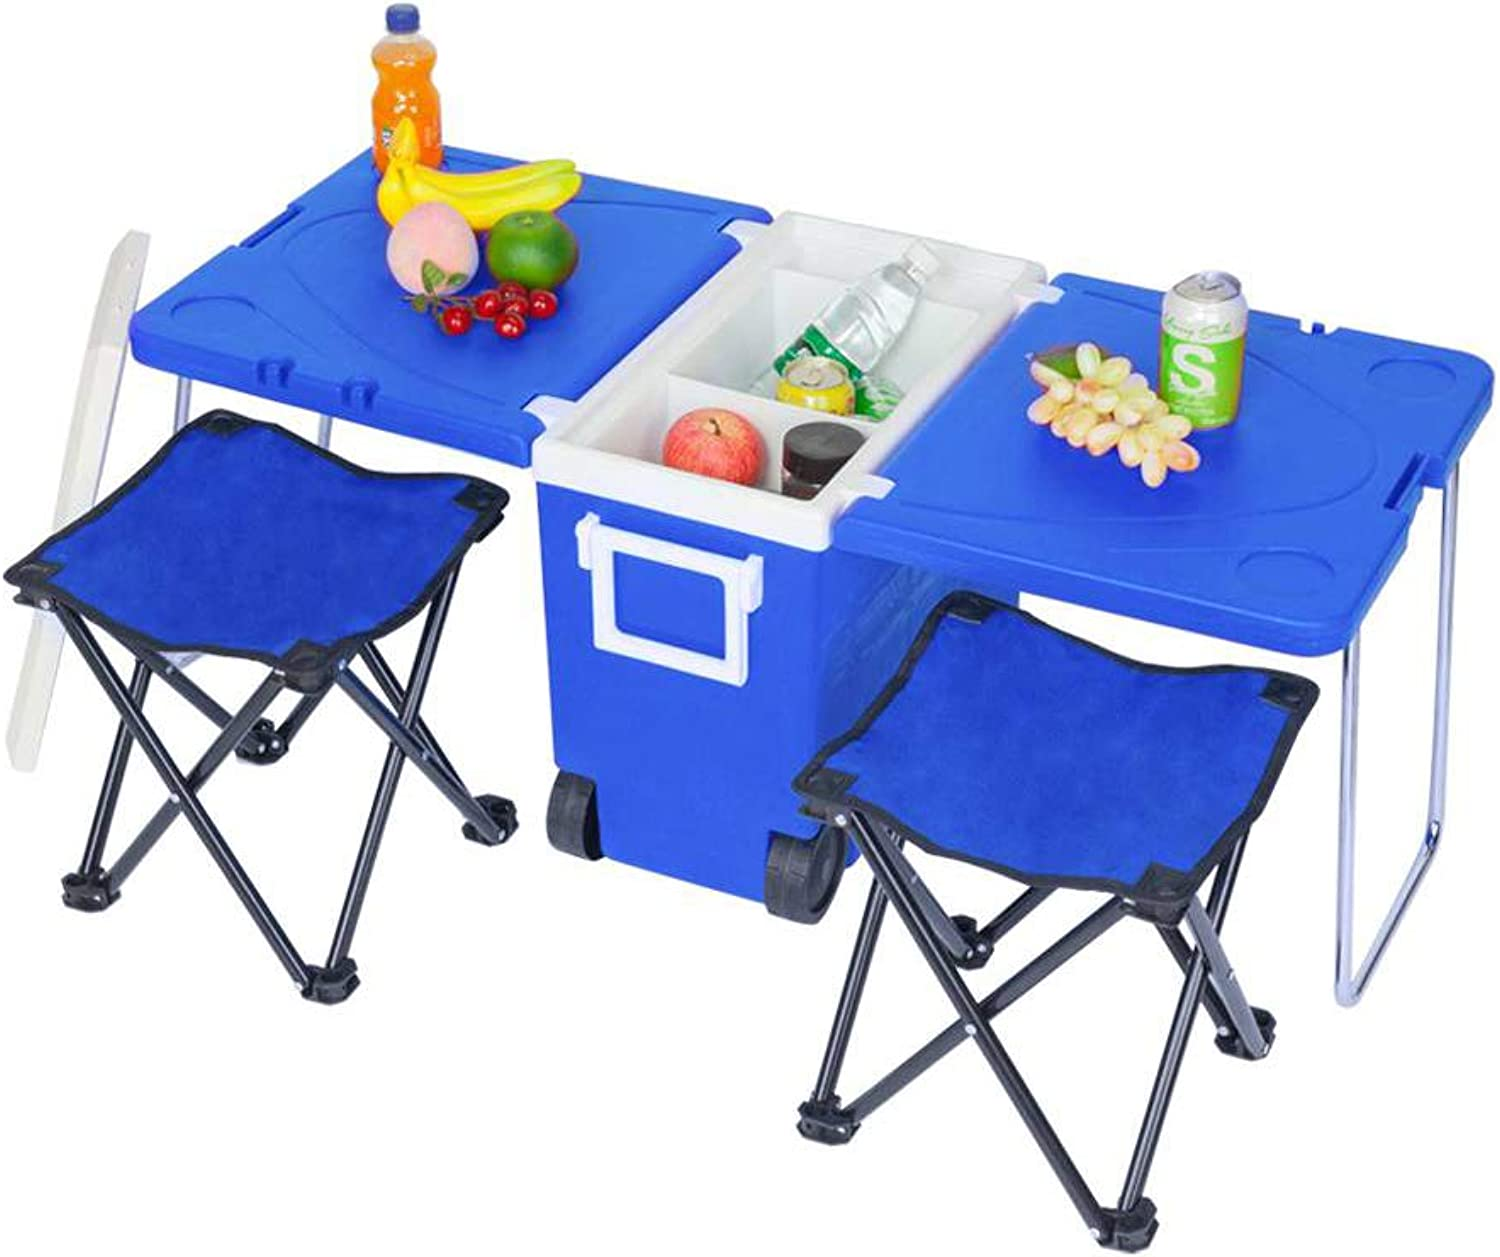 28L Camping Wheeled Coolers & Cool Box  Foldable Outdoor Picnic Table with 2 Stools, MultiFunction Insulated Rolling Cooler Trolley for BBQ, Festivals and Caravans